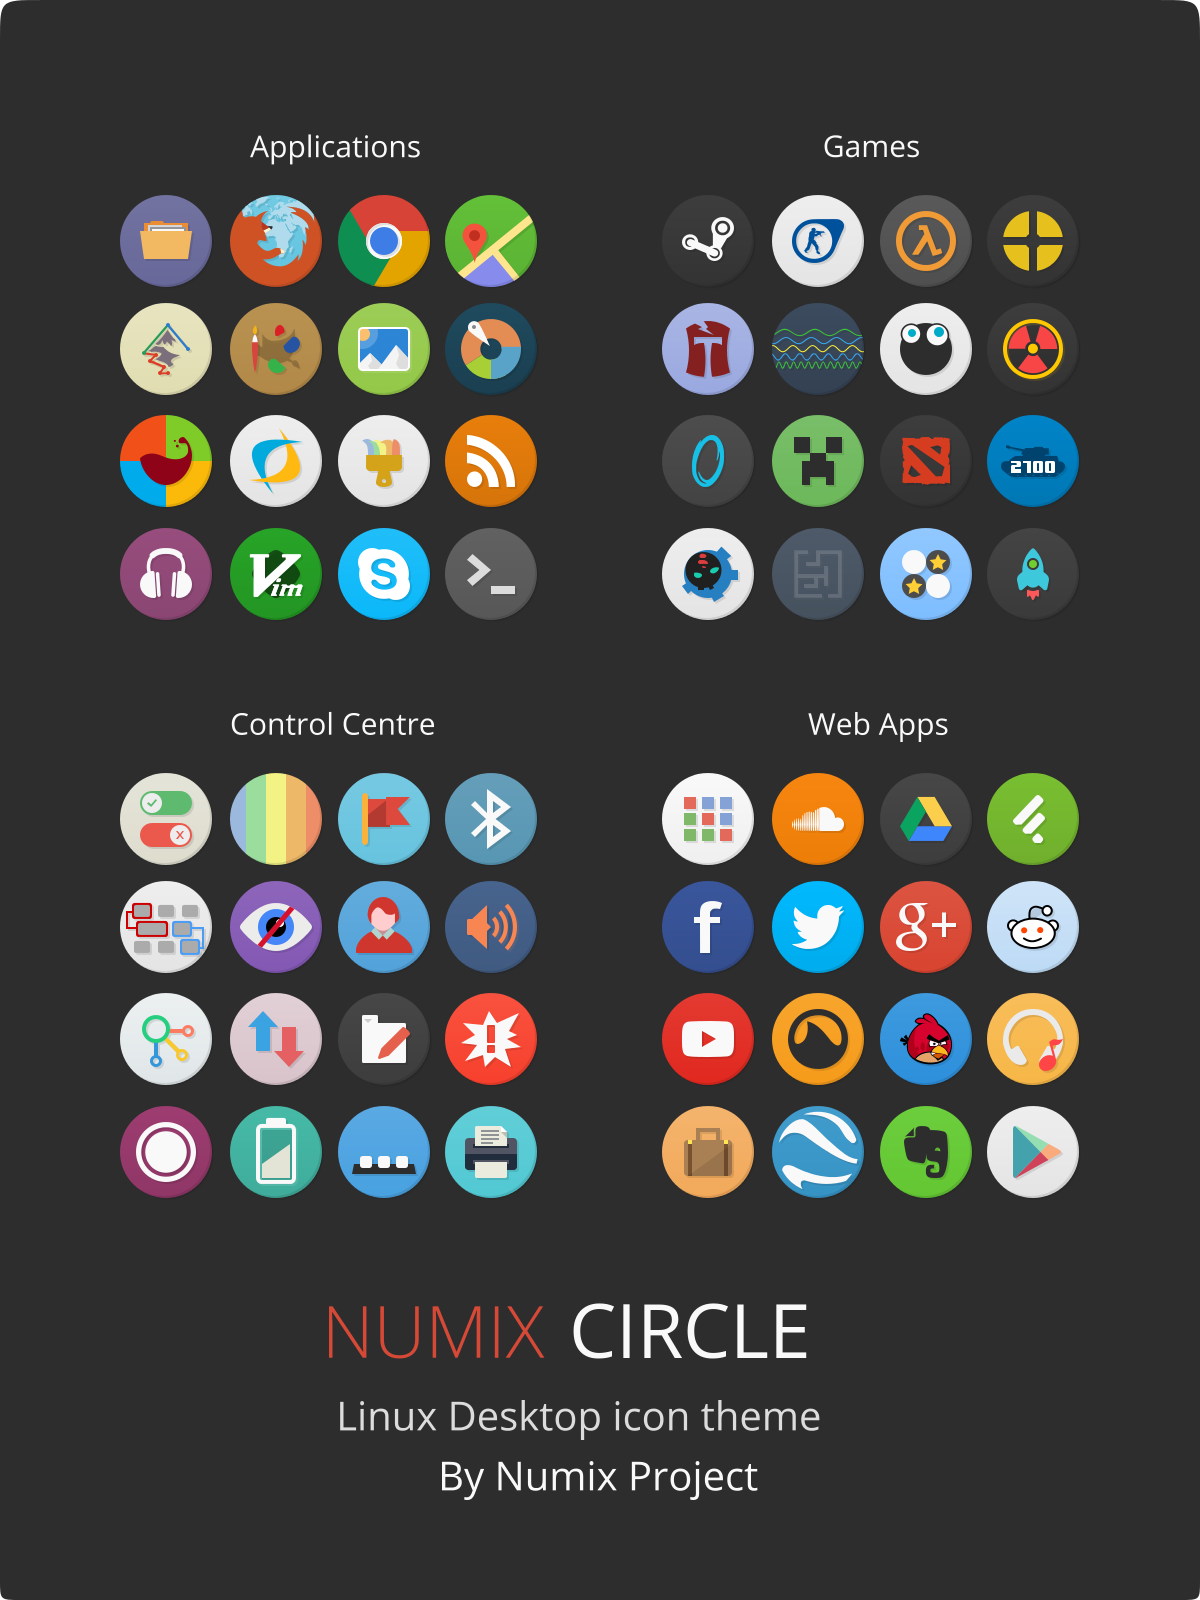 Numix-Circle Linux Desktop Icon Theme